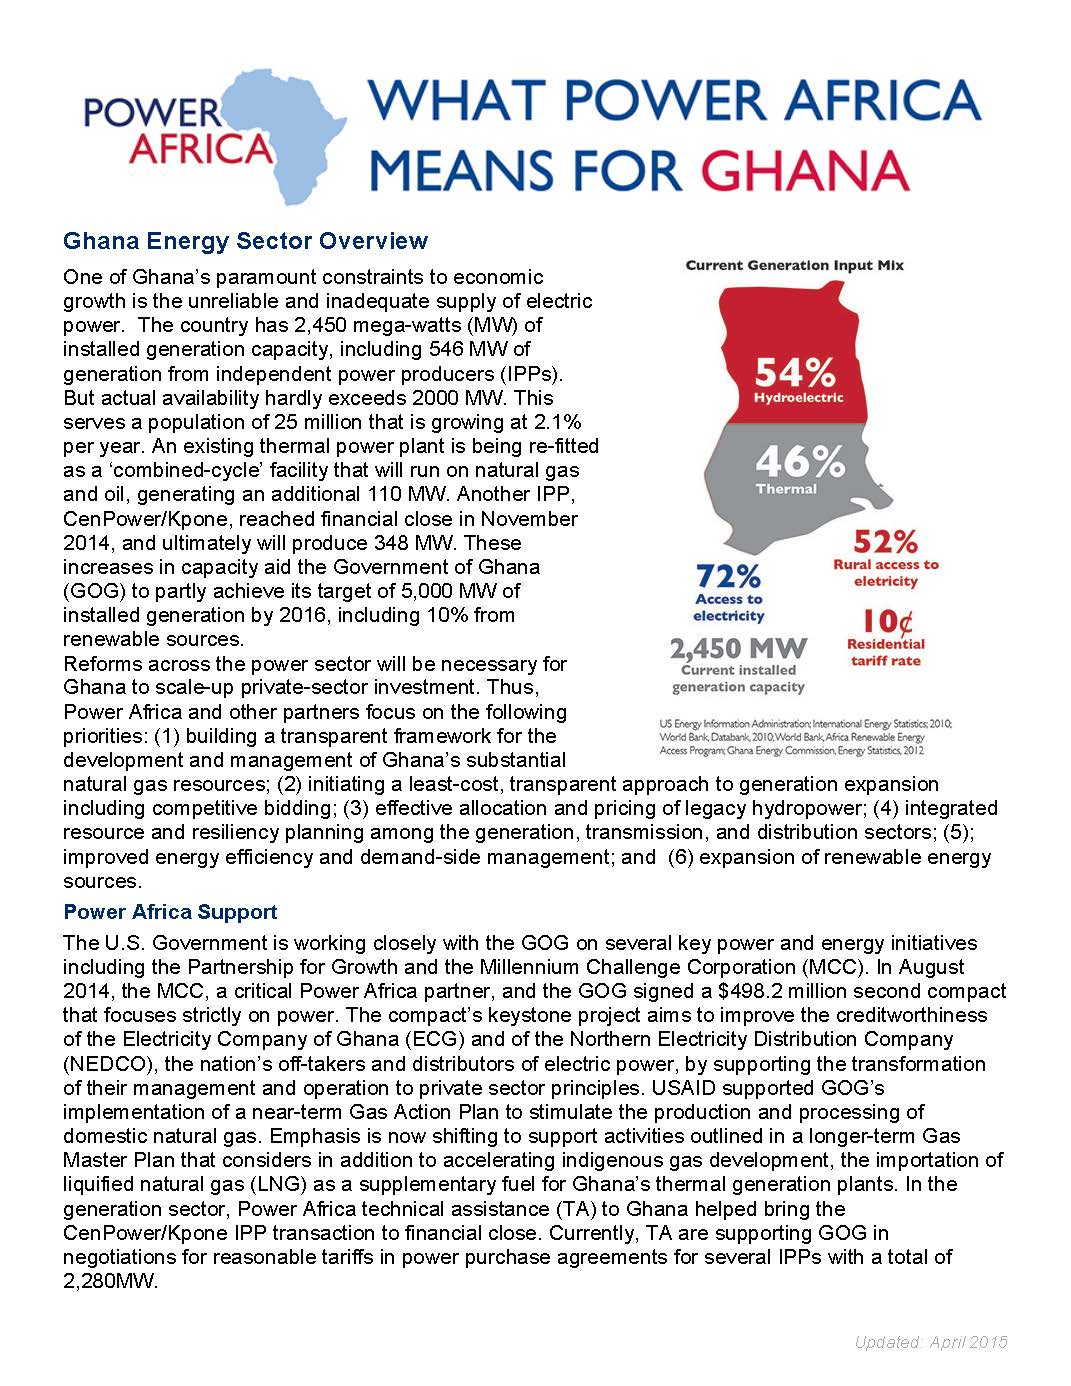 Fact Sheet Power Africa In Ghana US Agency For International Development